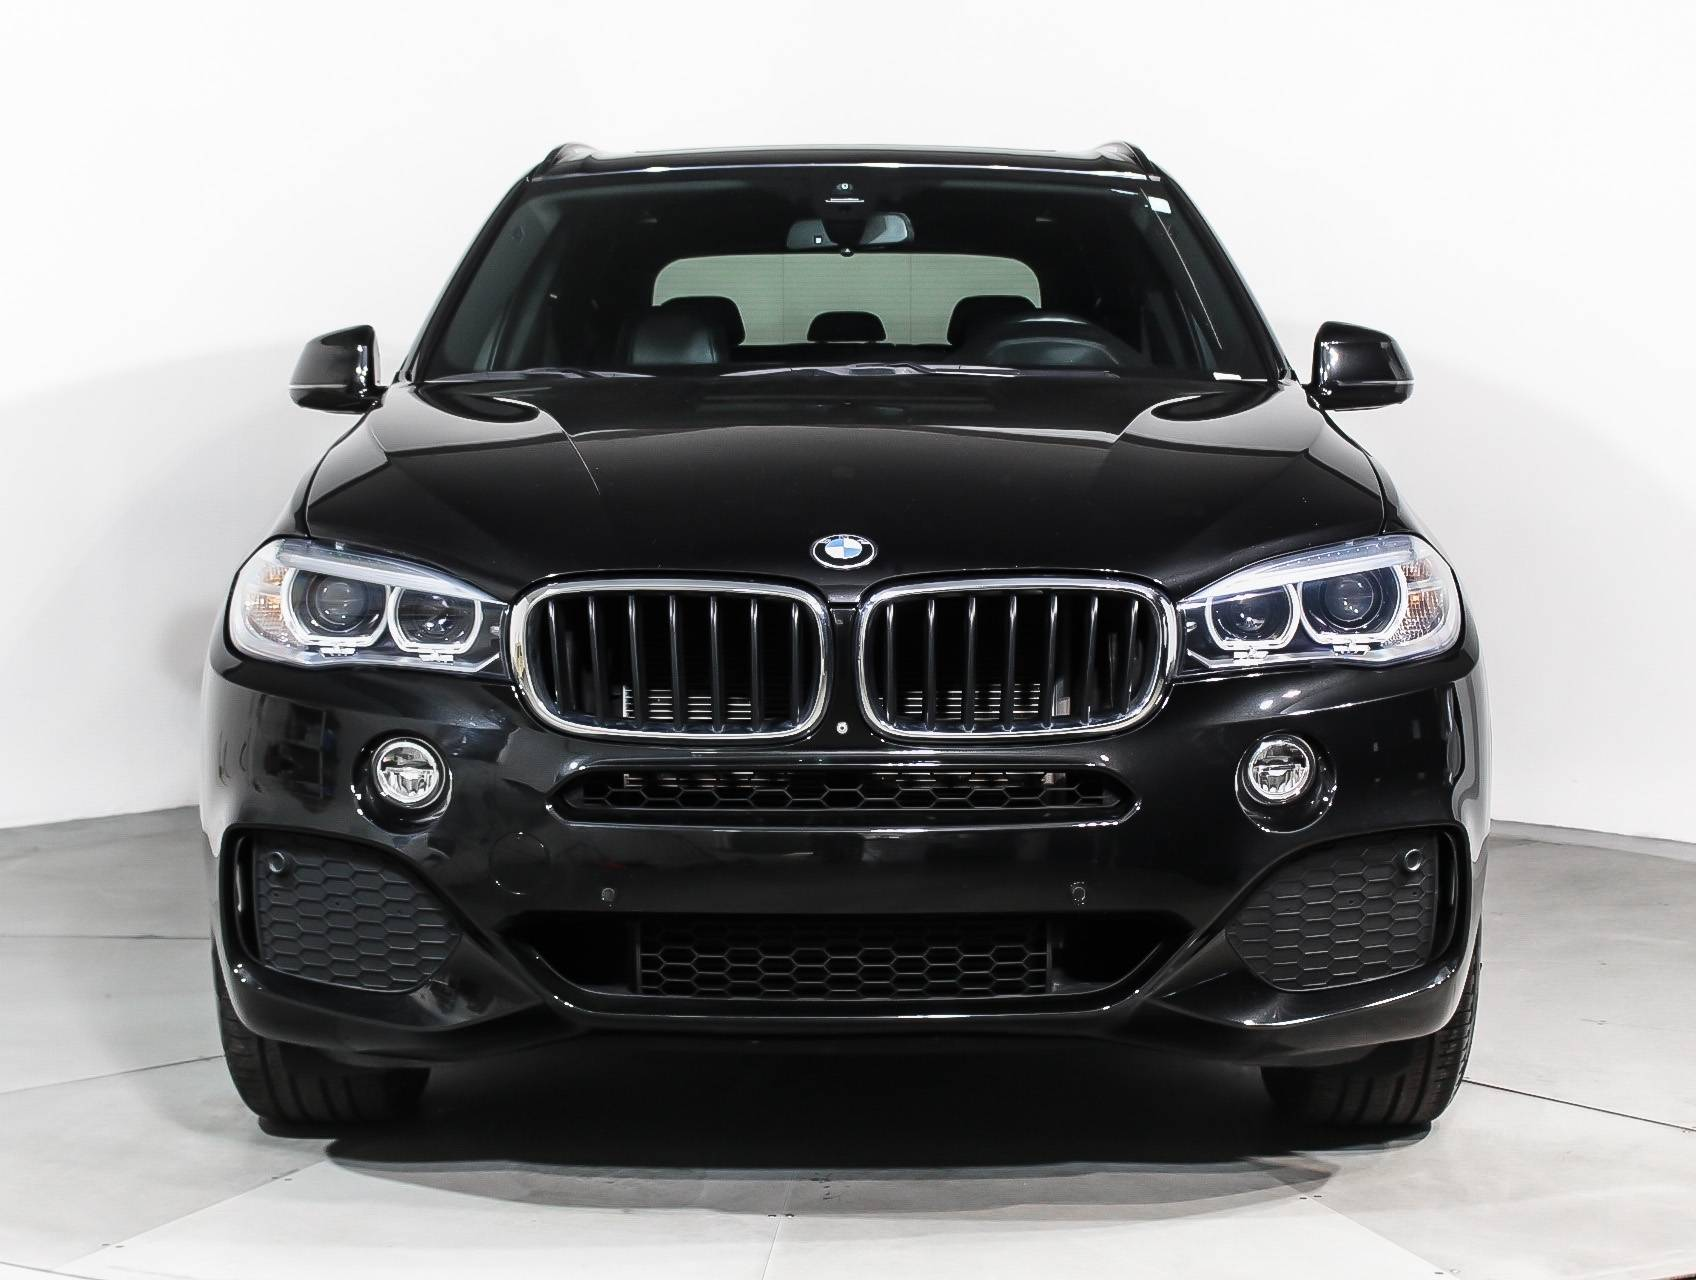 sports car m bmw used full mmugc automotiv id suv locally cc post listings performance